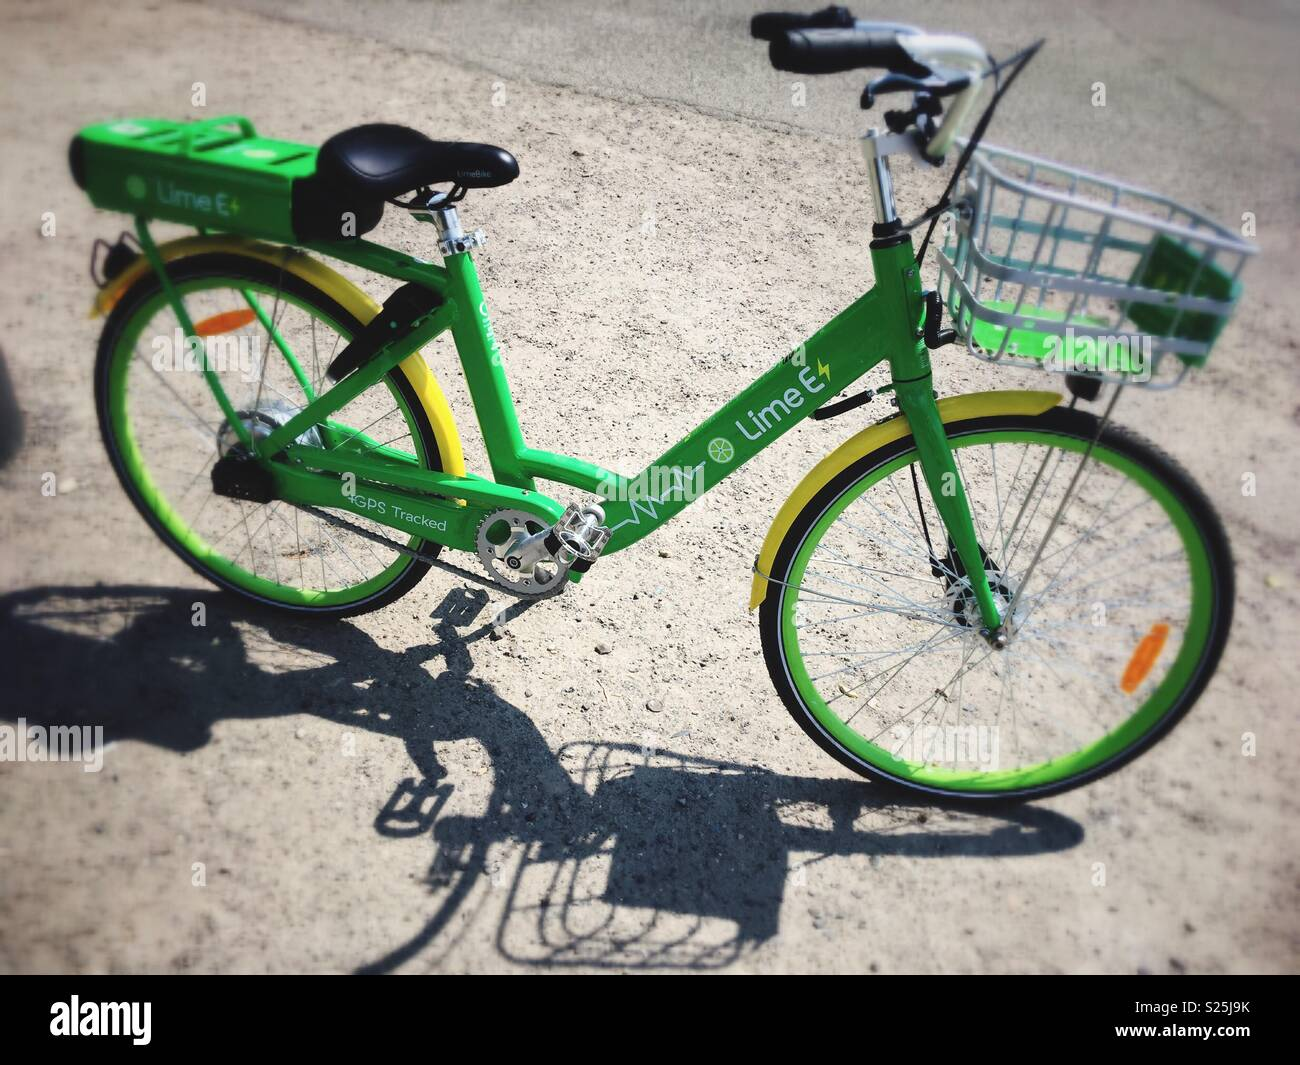 Electric Bicycle Rental Stock Photos Amp Electric Bicycle